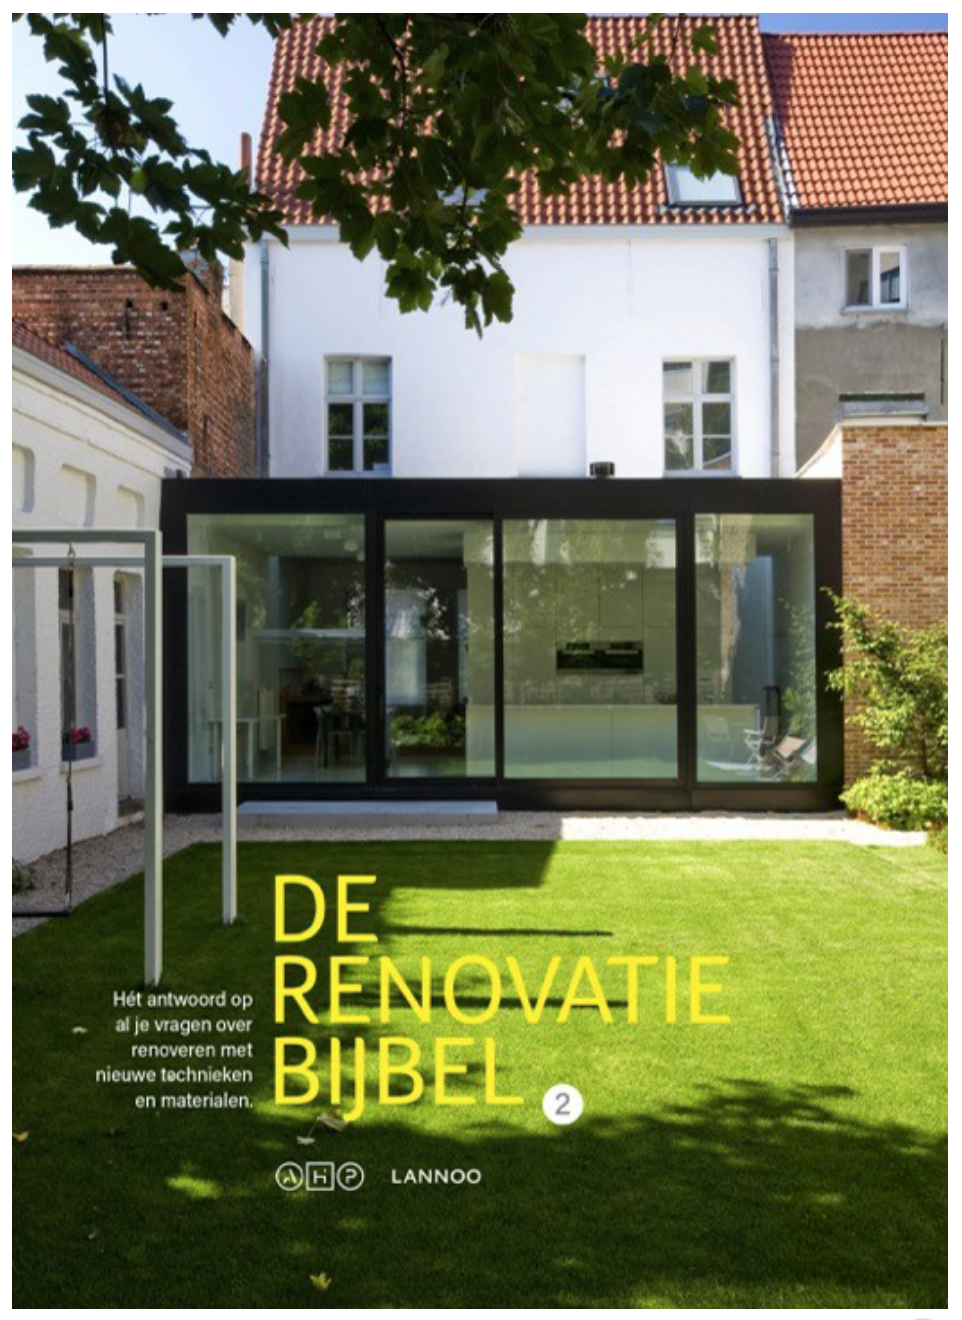 De Renovatie bijbel - 2nd edition